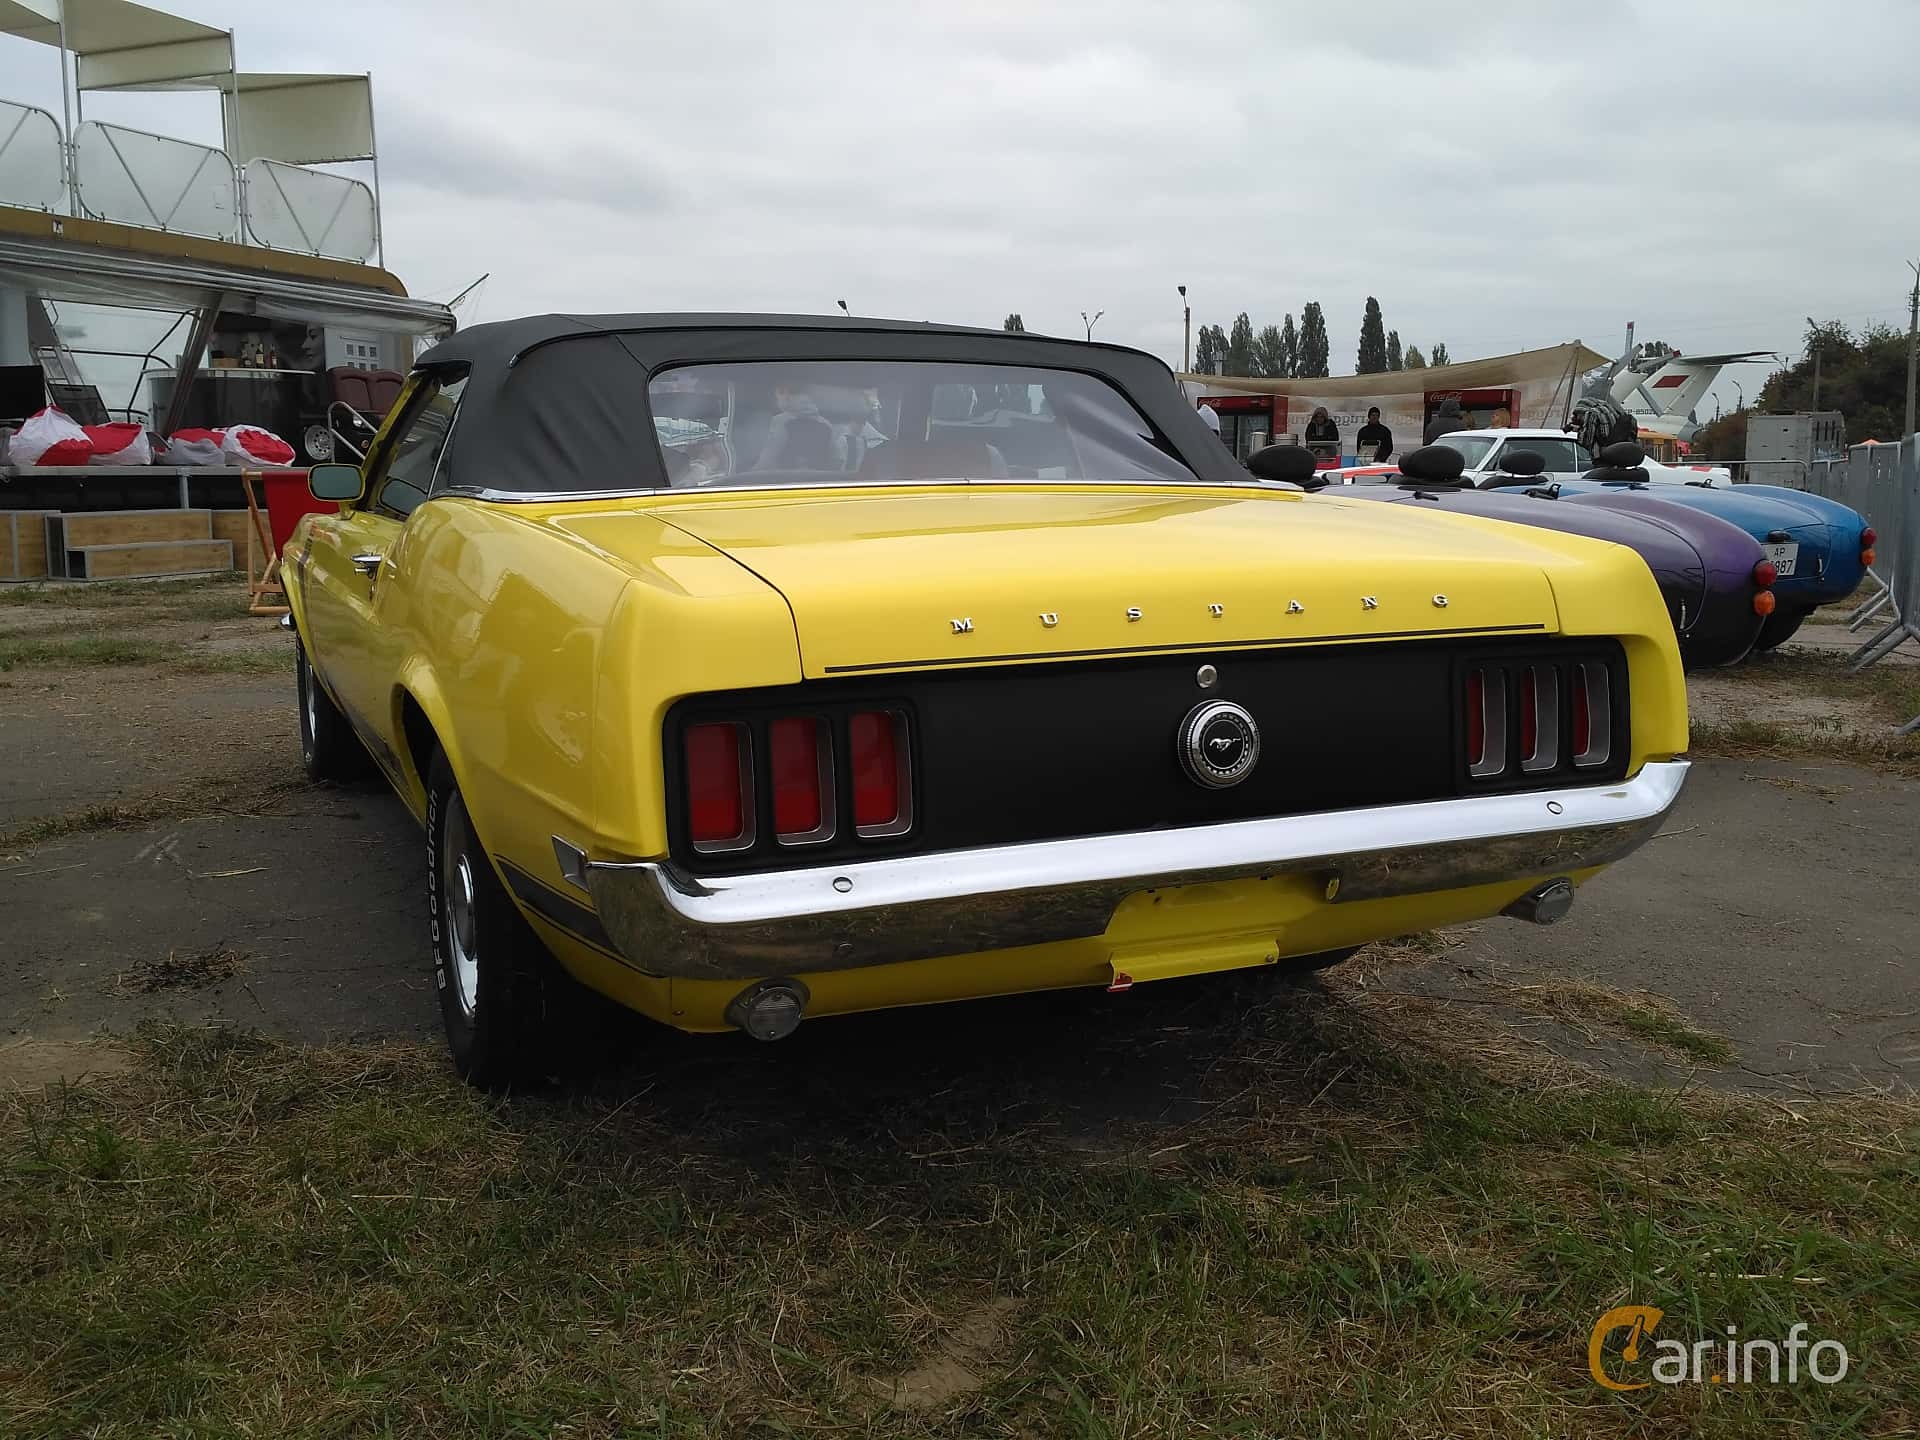 ford-mustang-convertible-back-side-old-car-land-no2-2017-2-457830.jpg